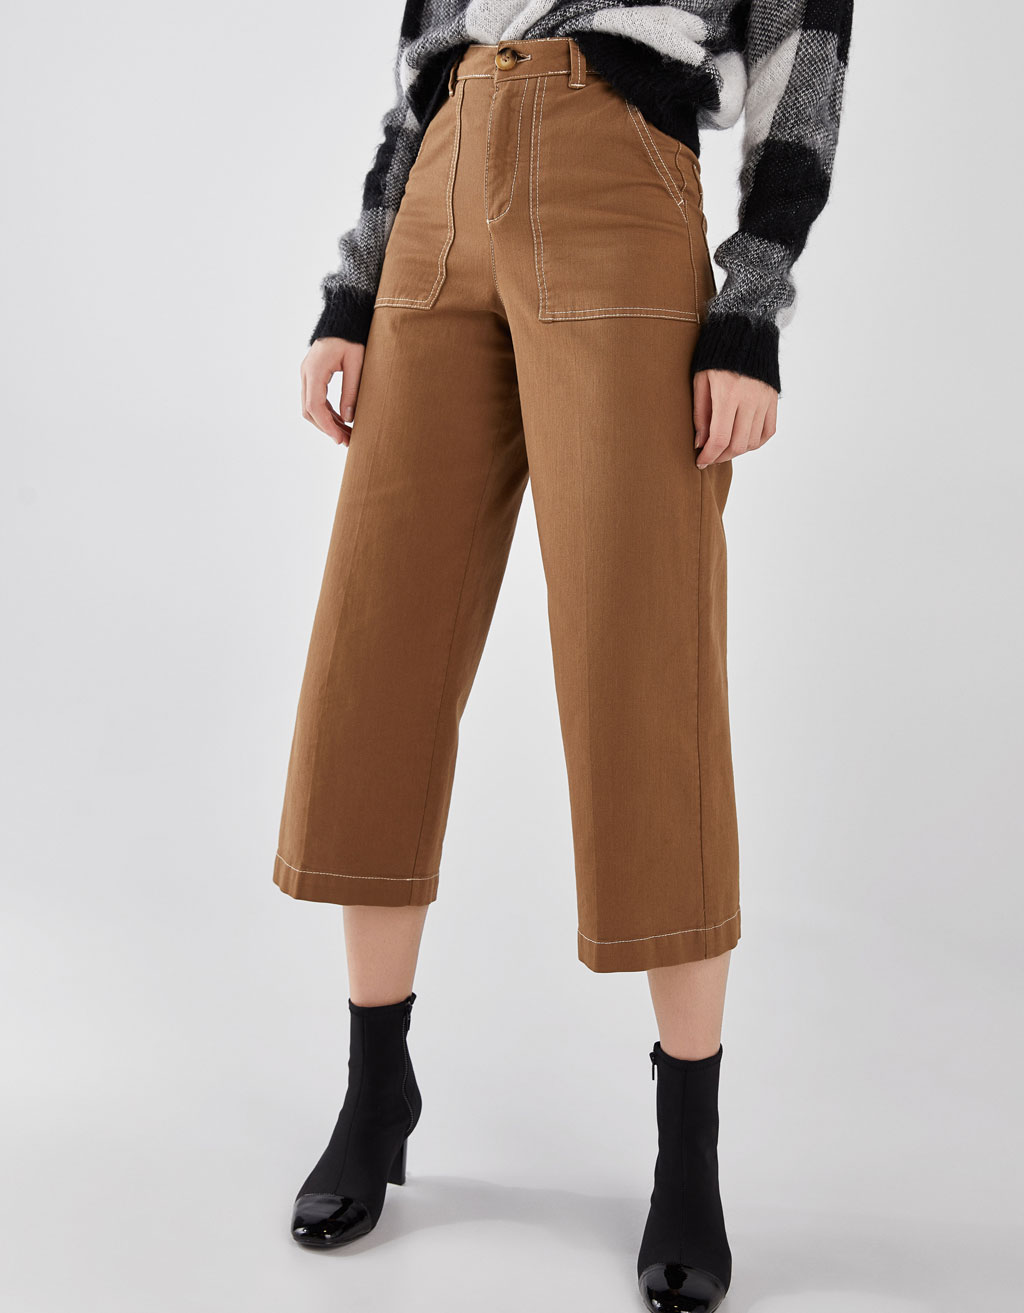 Culottes with contrasting topstitching